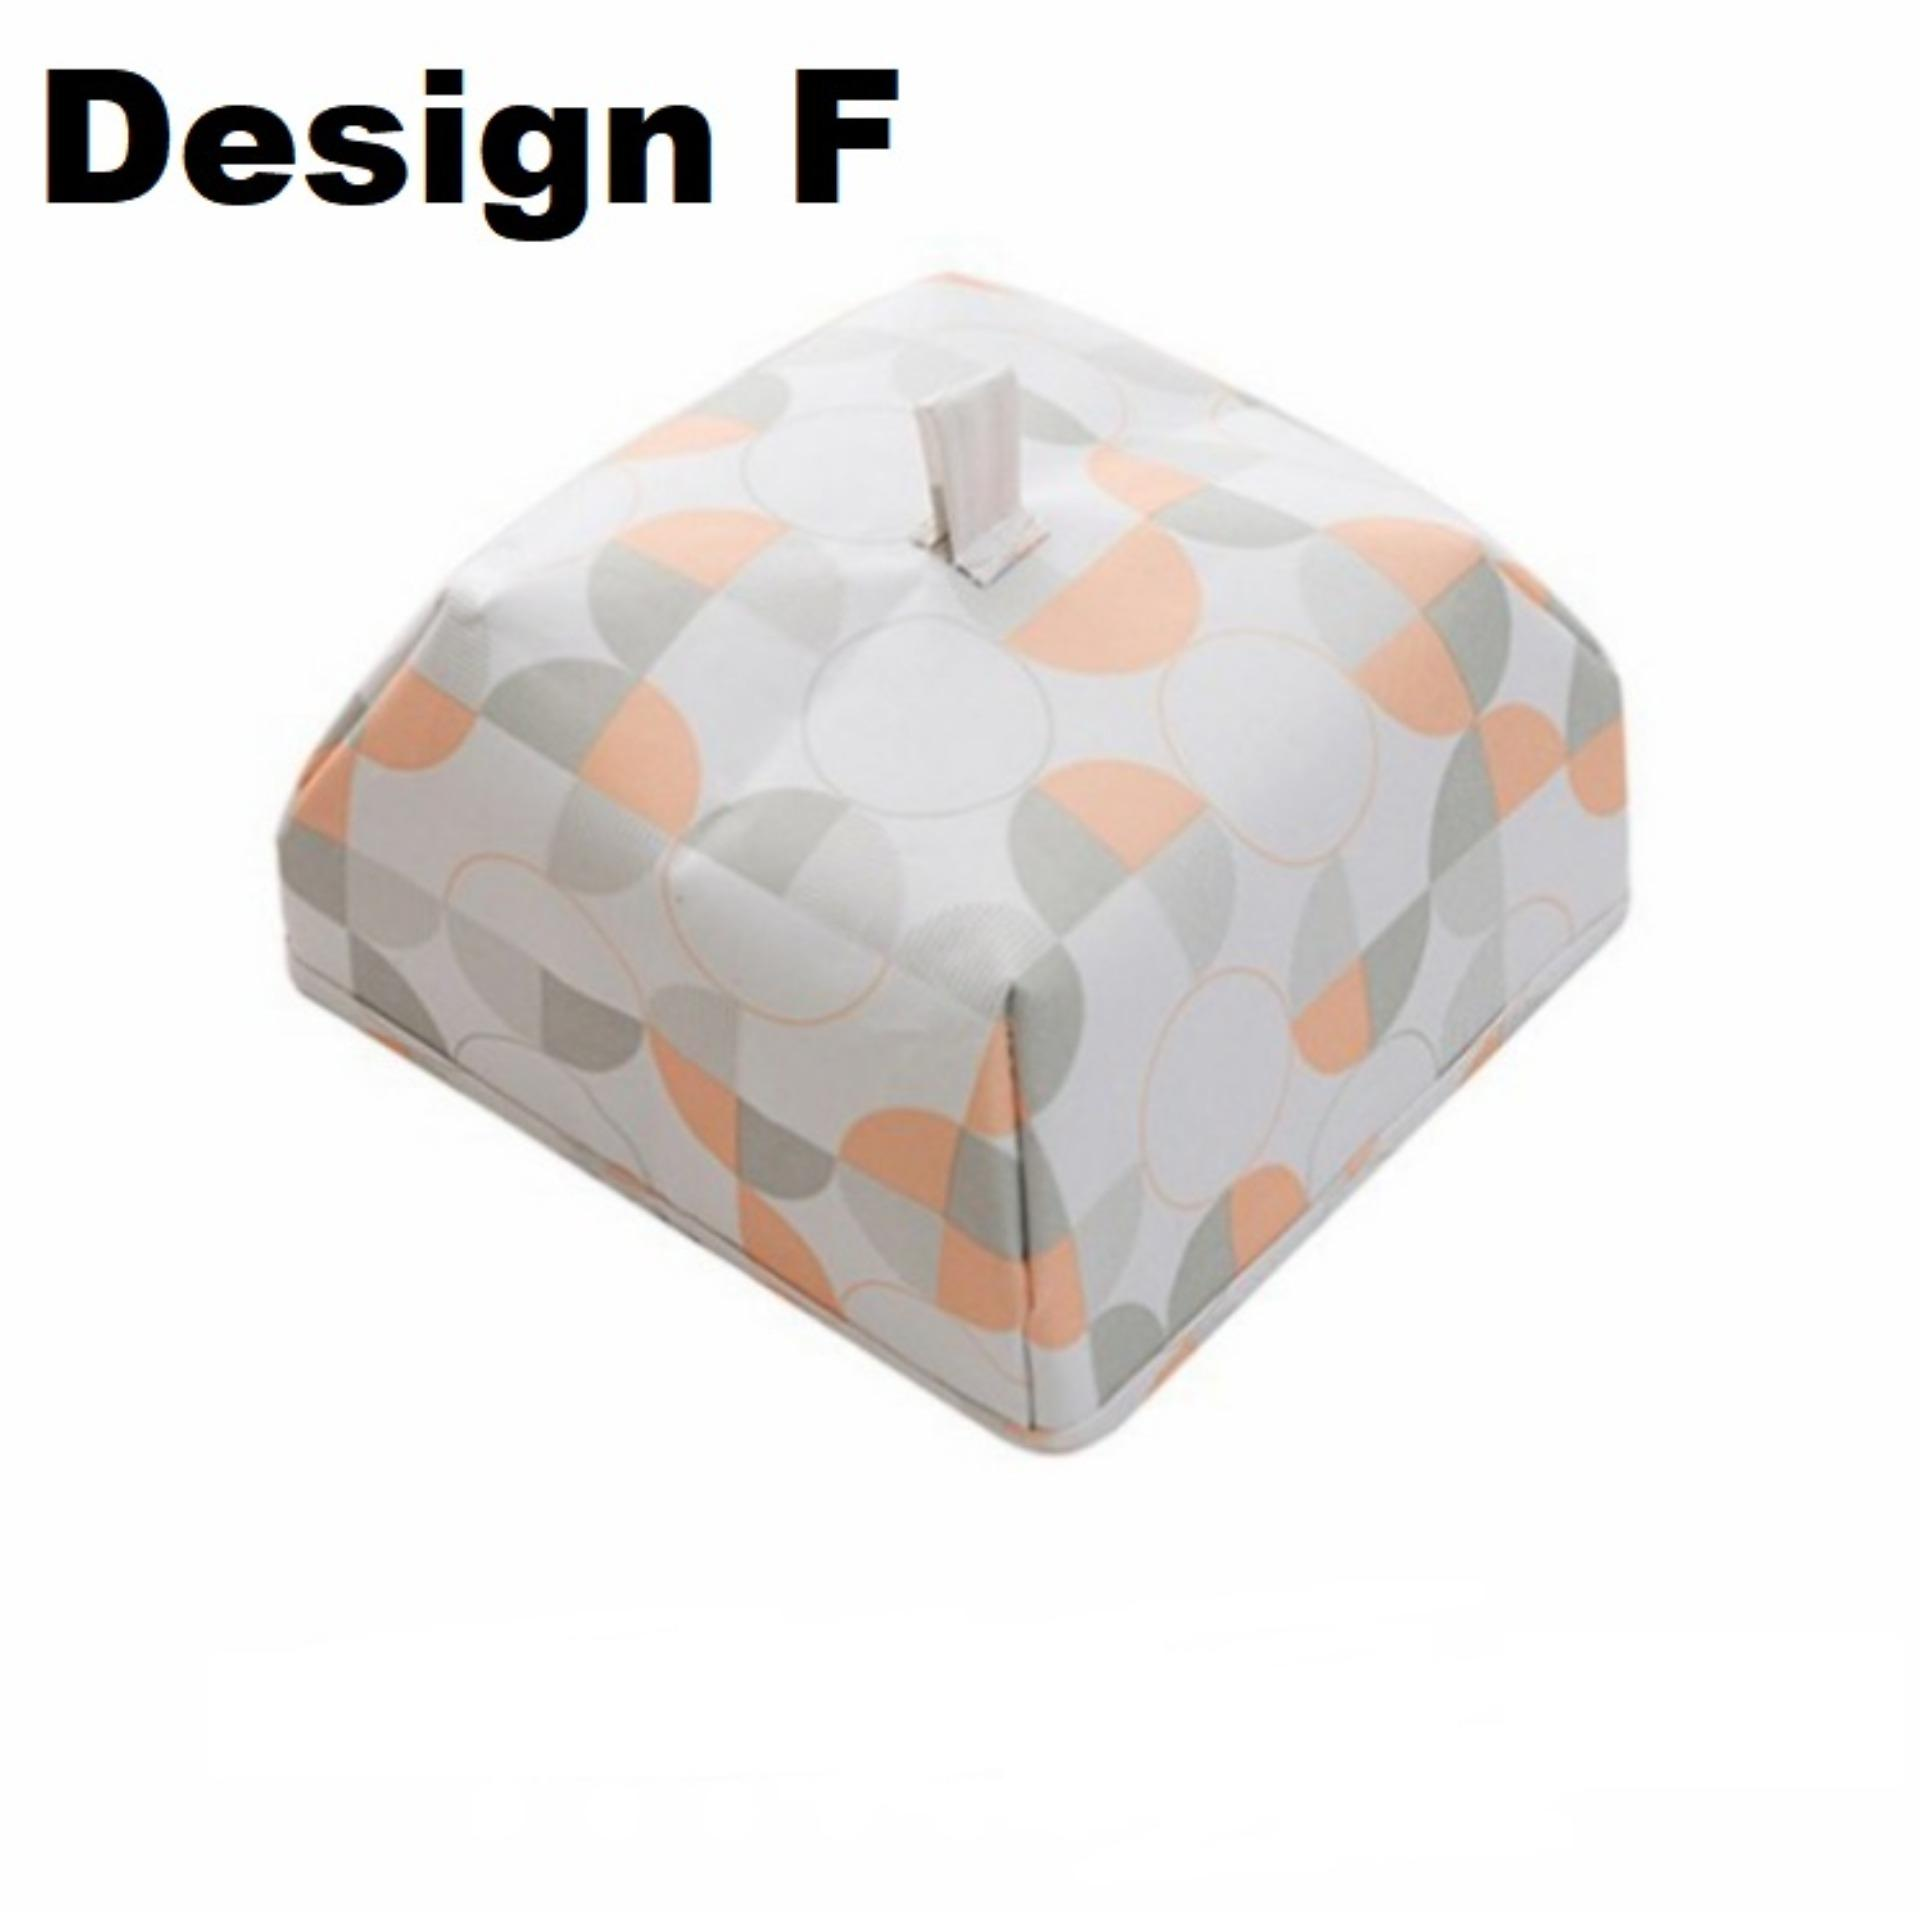 2019 Latest Design Foldable Food Covers Keep Warm Hot Aluminum Foil Cover Dishes Insulation Utilidades Kitchen Table Accessories Tools Reasonable Price All-purpose Covers Household Merchandises